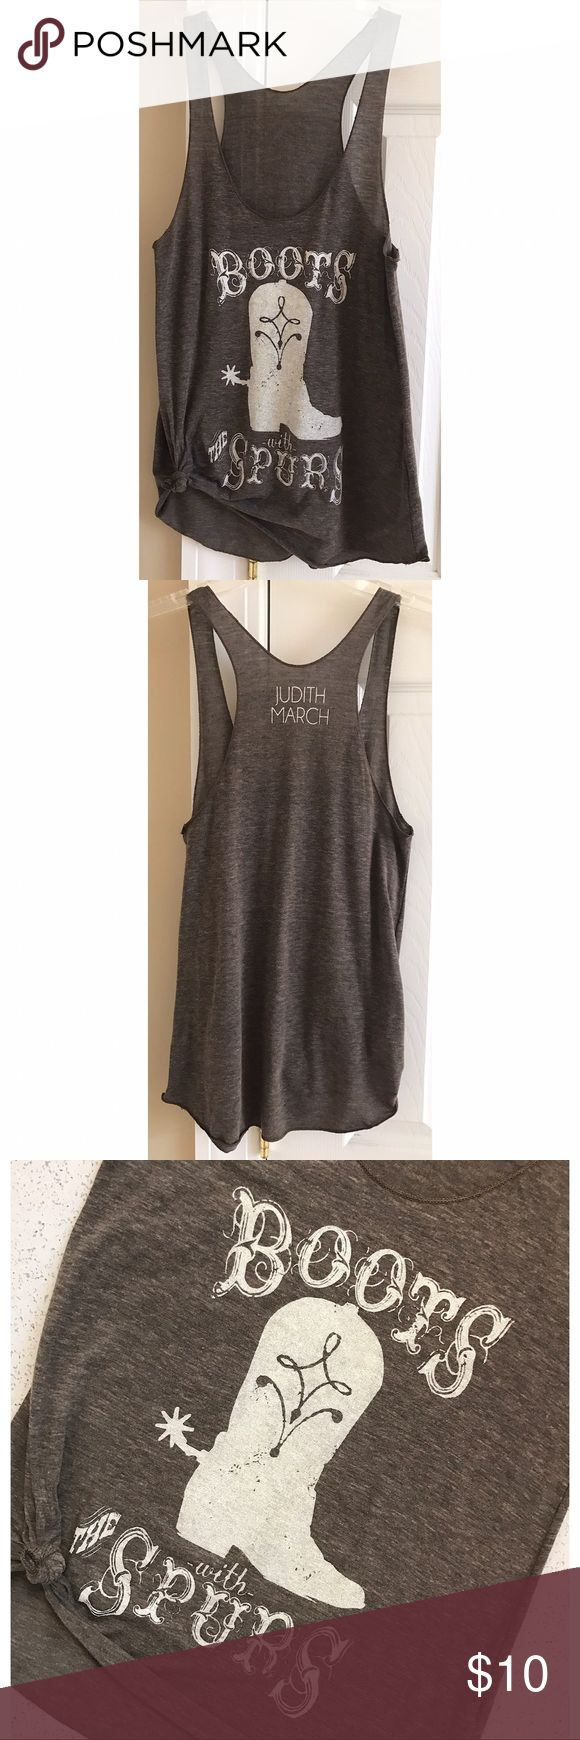 Judith March Tank Top Judith March graphic tank top. Never worn. Judith March Tops Tank Tops